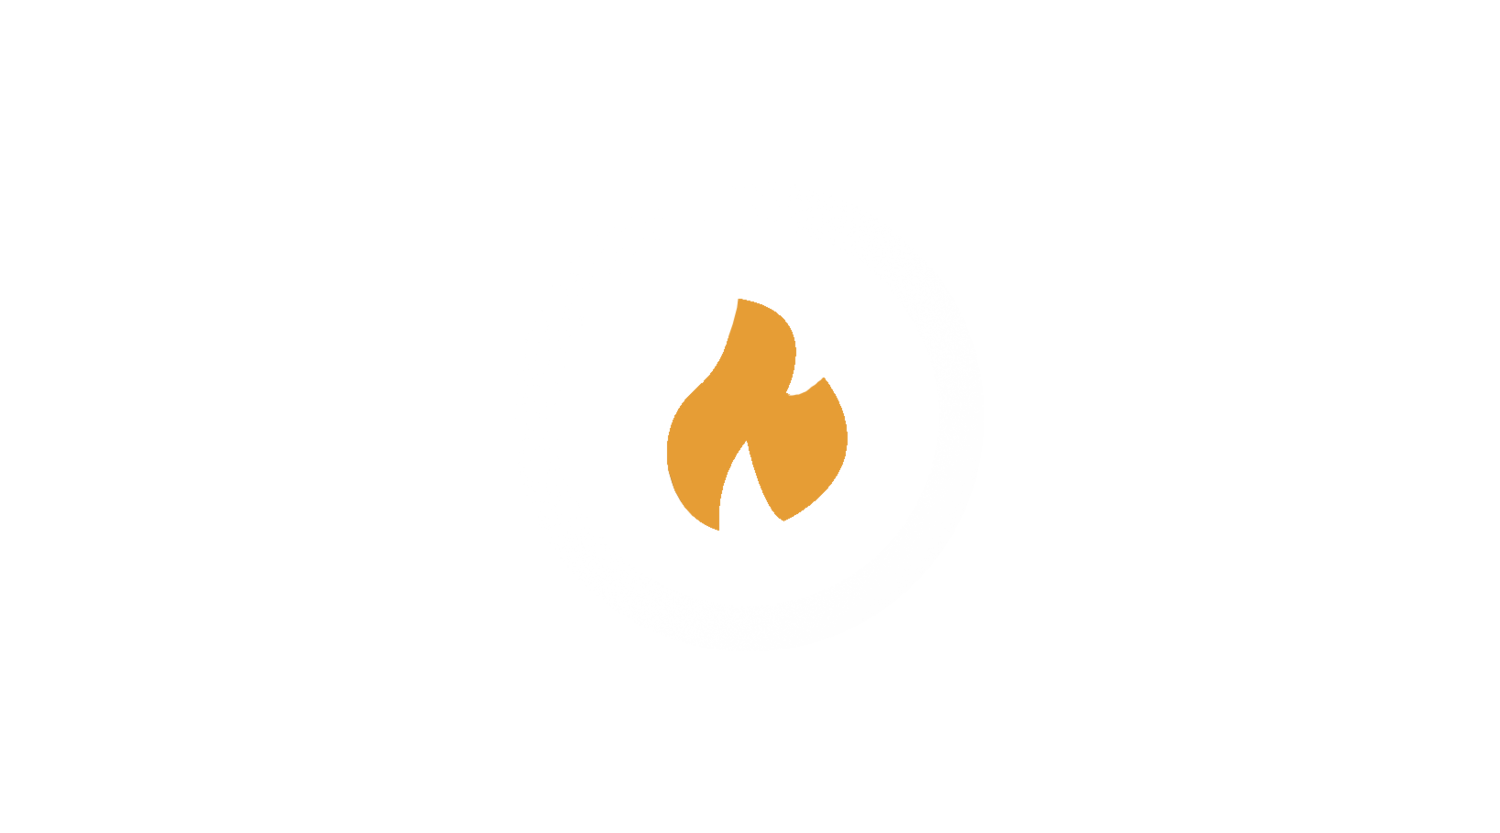 Firelight Production